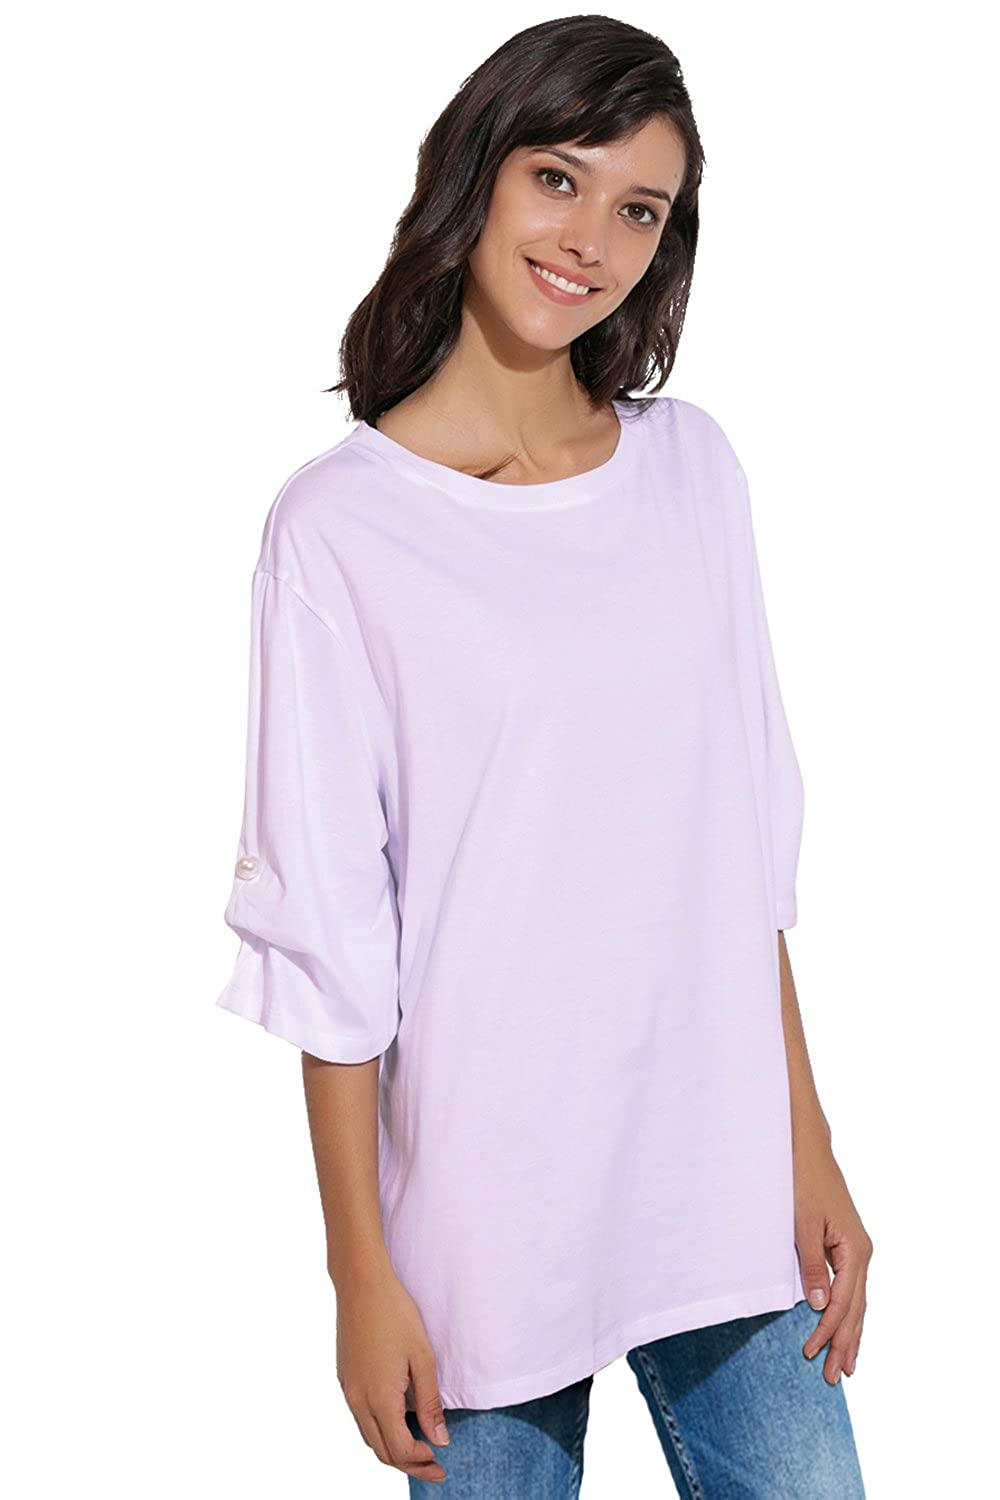 e23b946dade4 APRLL Women Loose T Shirts 3 4 Sleeve Boyfriend Style Casual Tops Plus Size  at Amazon Women s Clothing store